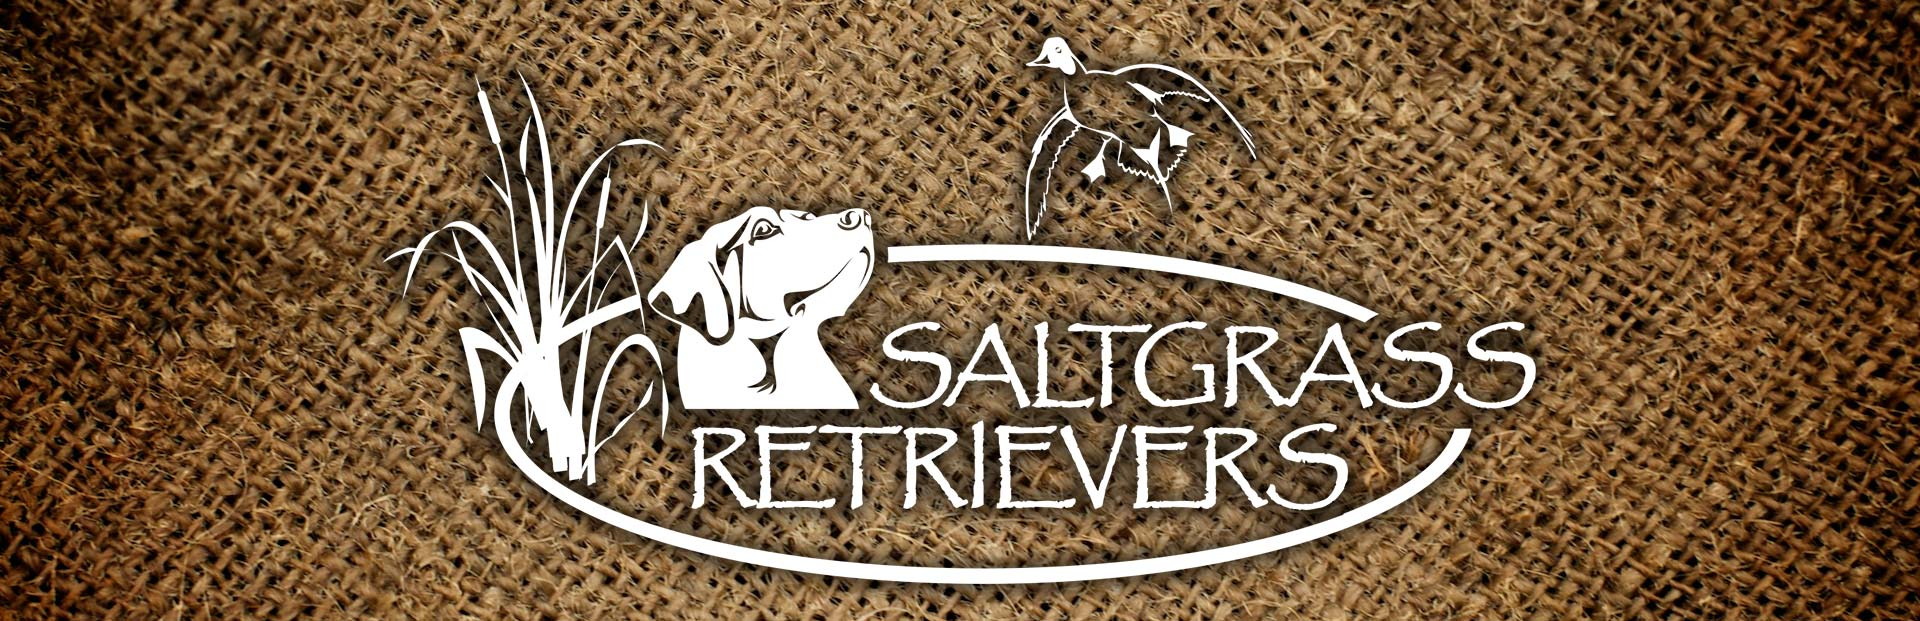 Contact Saltgrass Retrievers